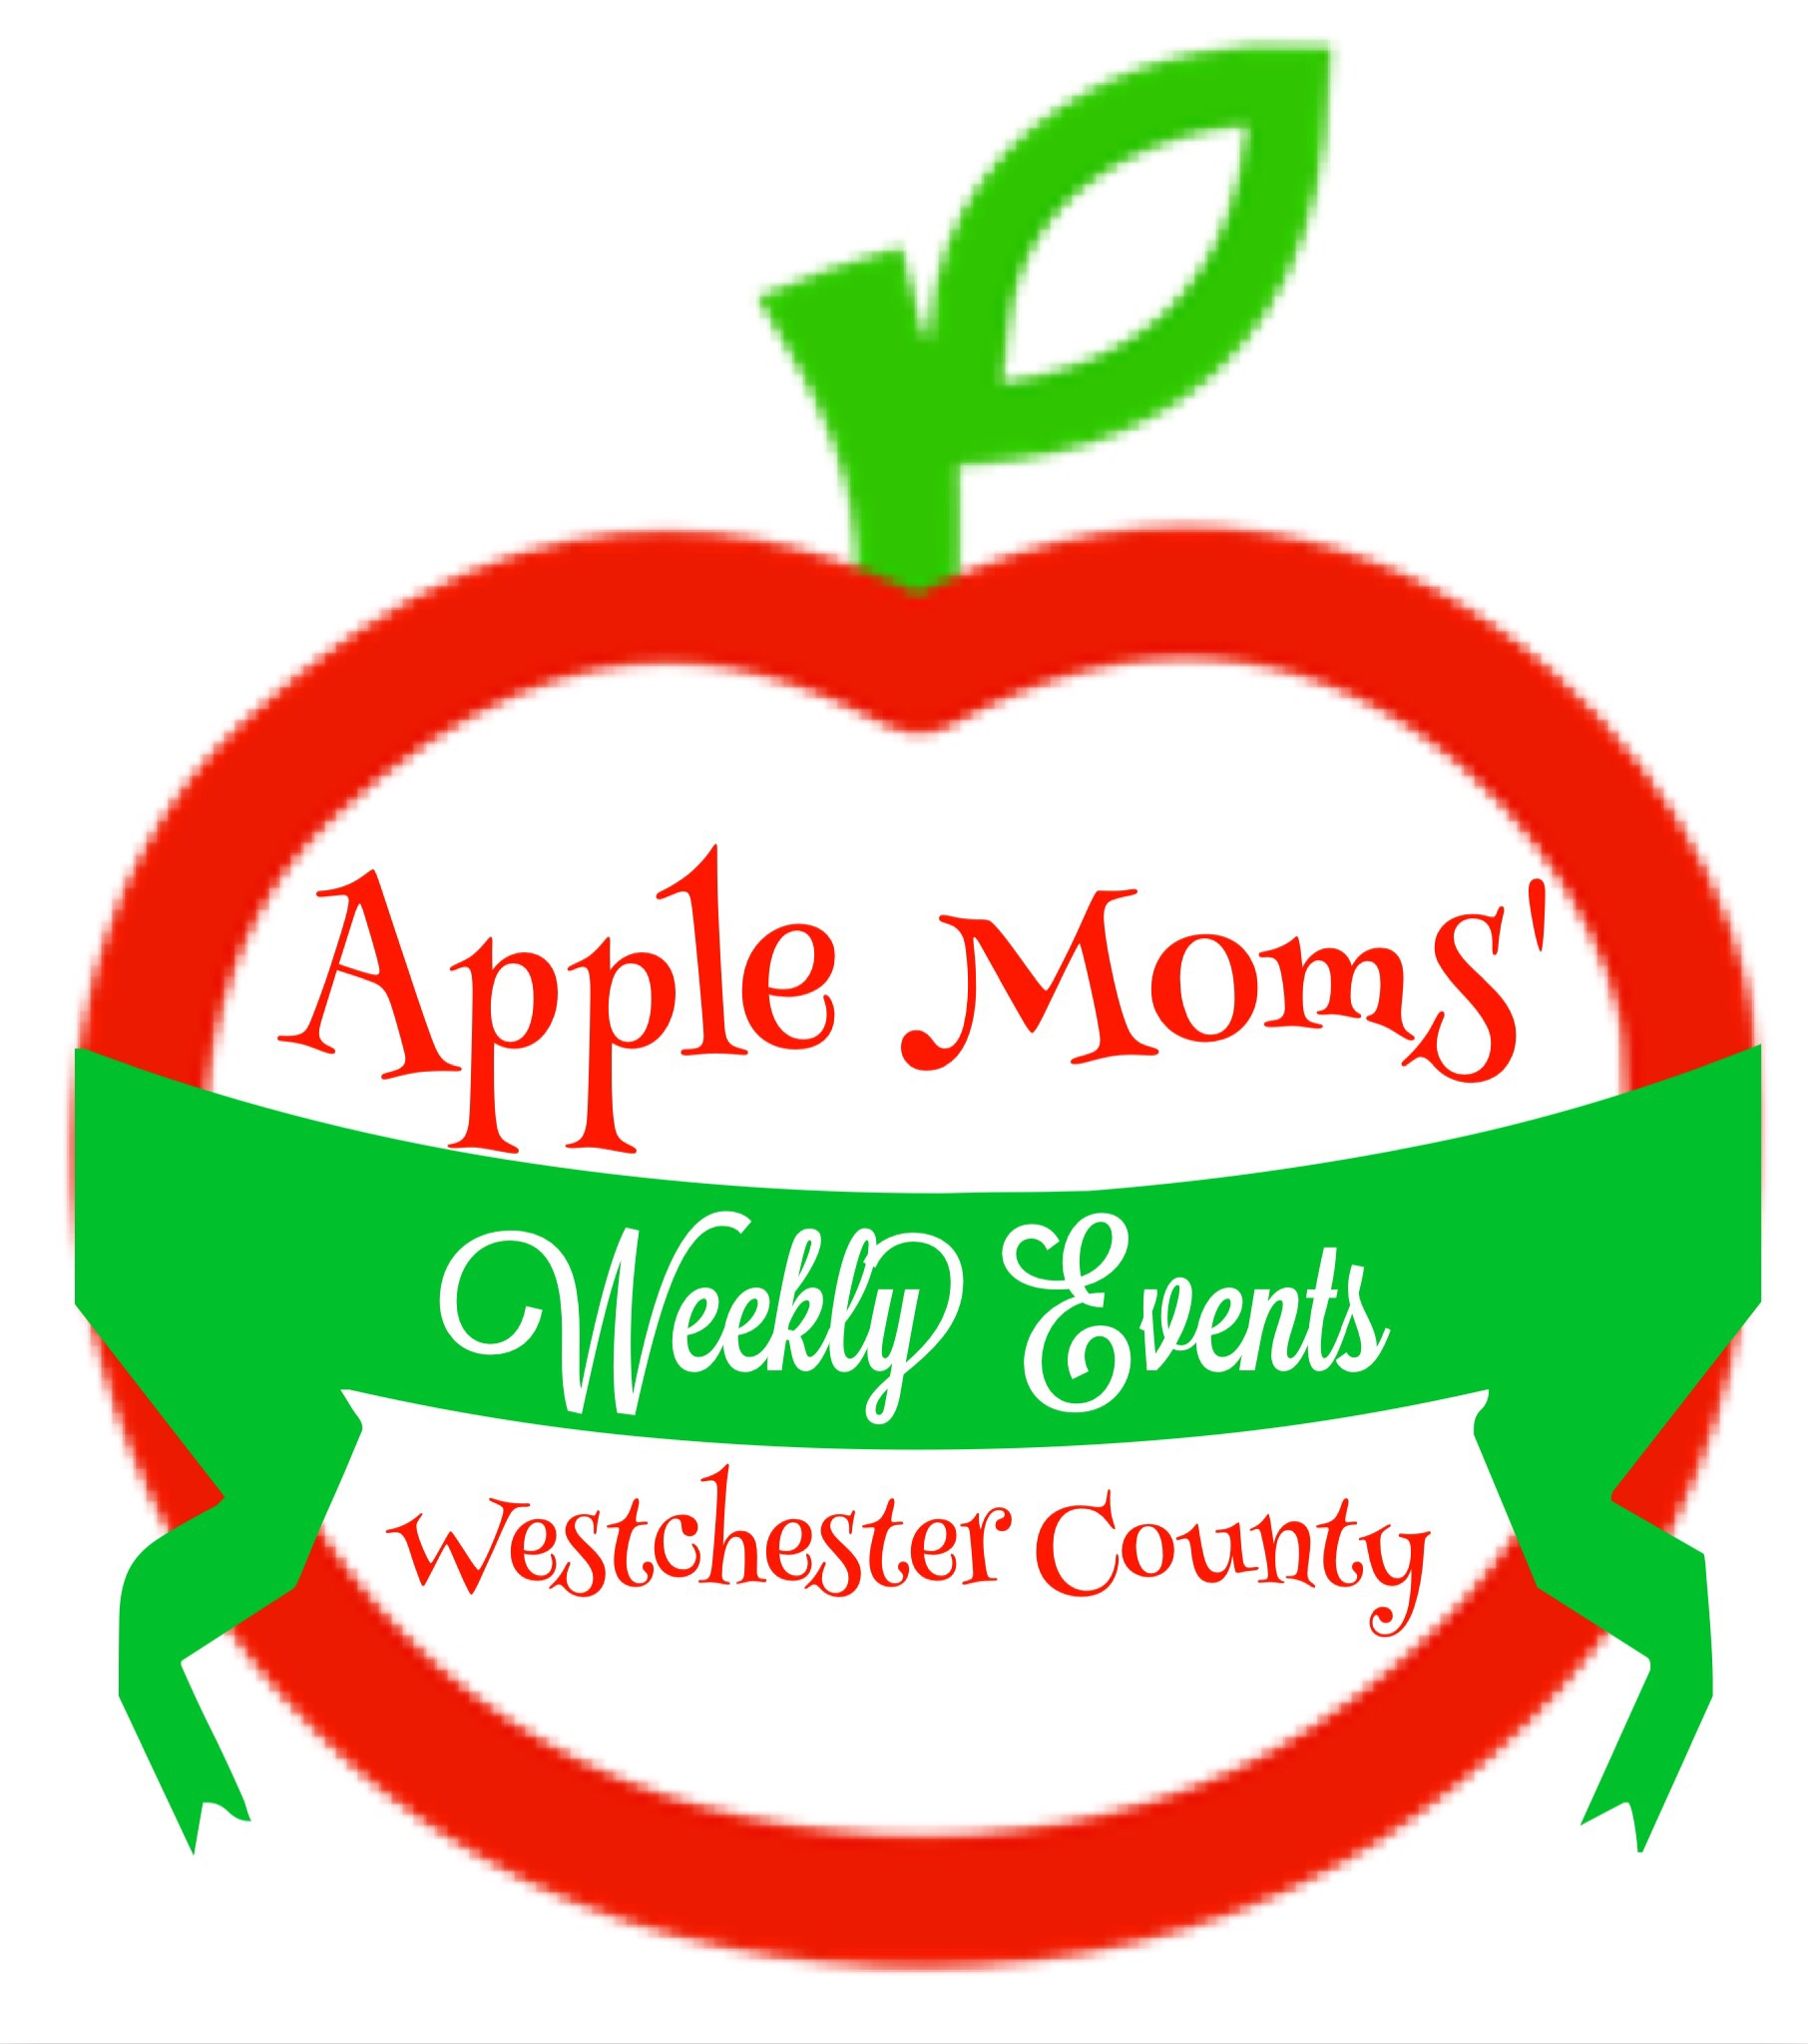 Westchester County Weekly Events 7/28- 8/3